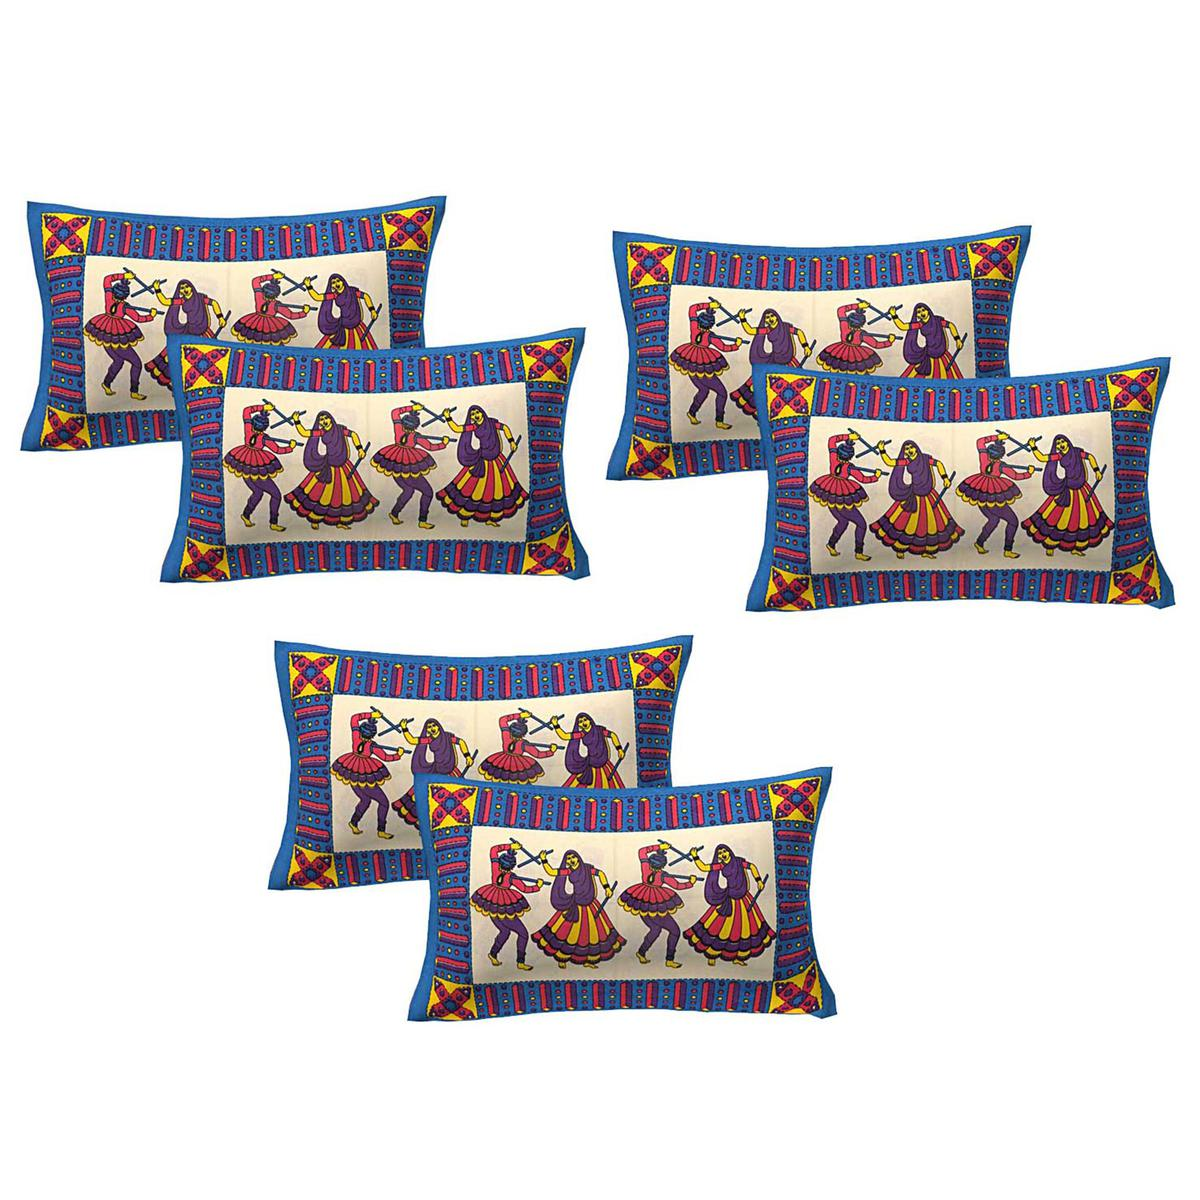 AJ Home - Blue Colored 100% Cotton Printed Pillow Covers 3 Sets (6 Pieces)